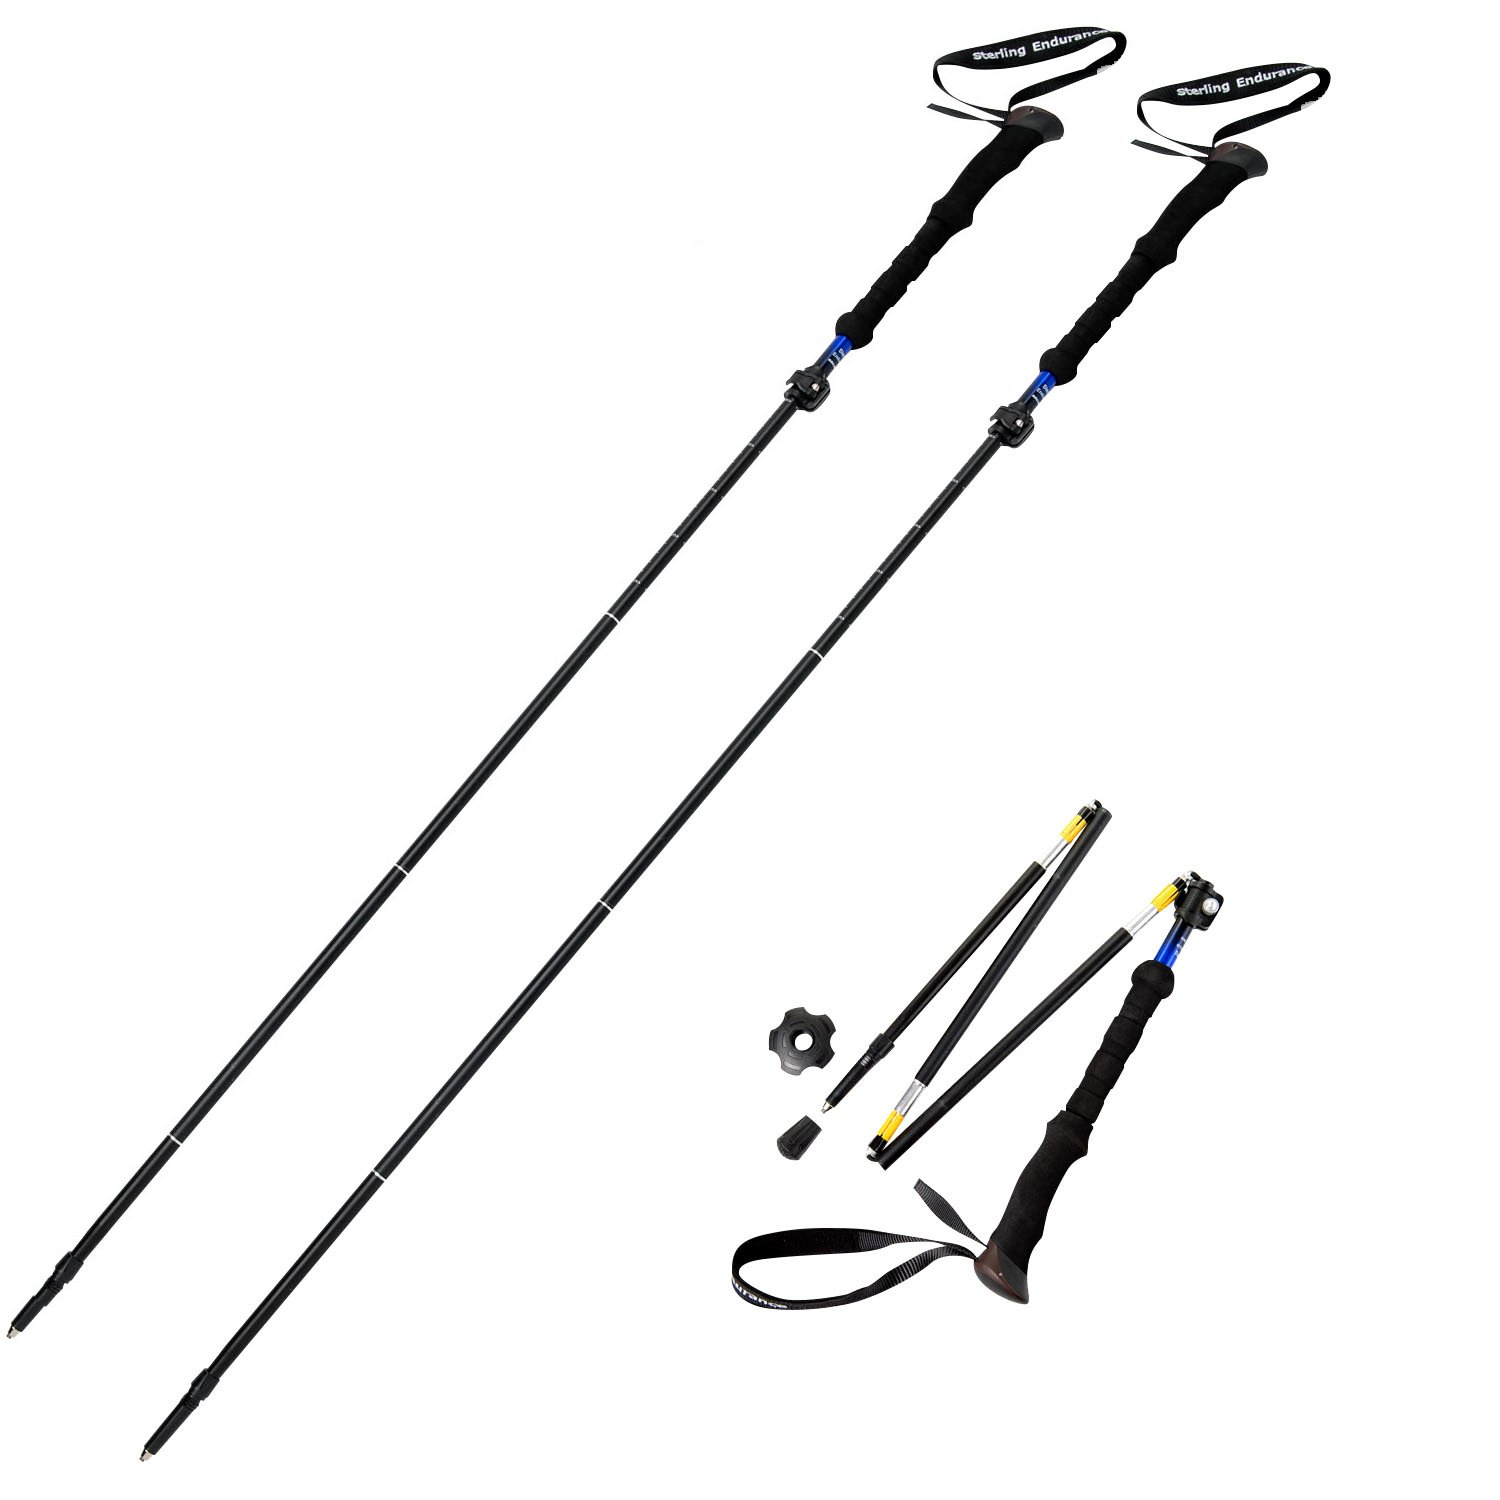 Hiking poles clipart graphic black and white download Sterling Endurance Trekking Poles/Collapsible to 13 1/2\